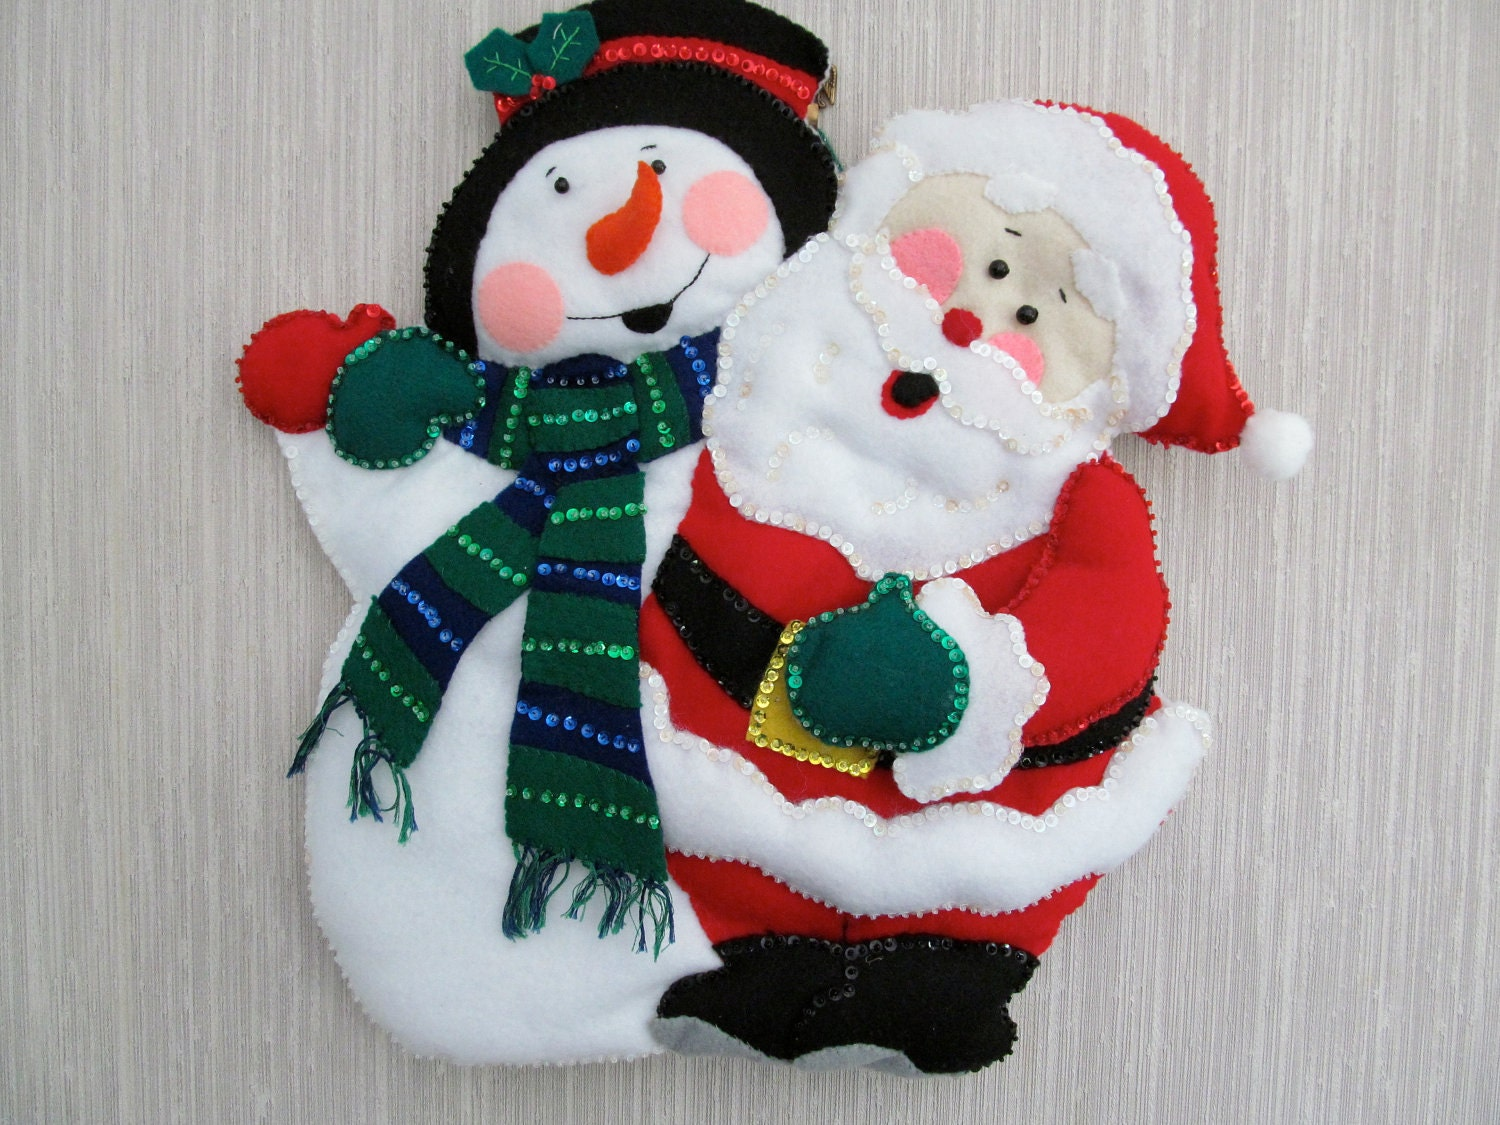 Santa and Frosty the Snowman Felt Wall Hanging Decoration Completed Handmade from Bucilla Kit